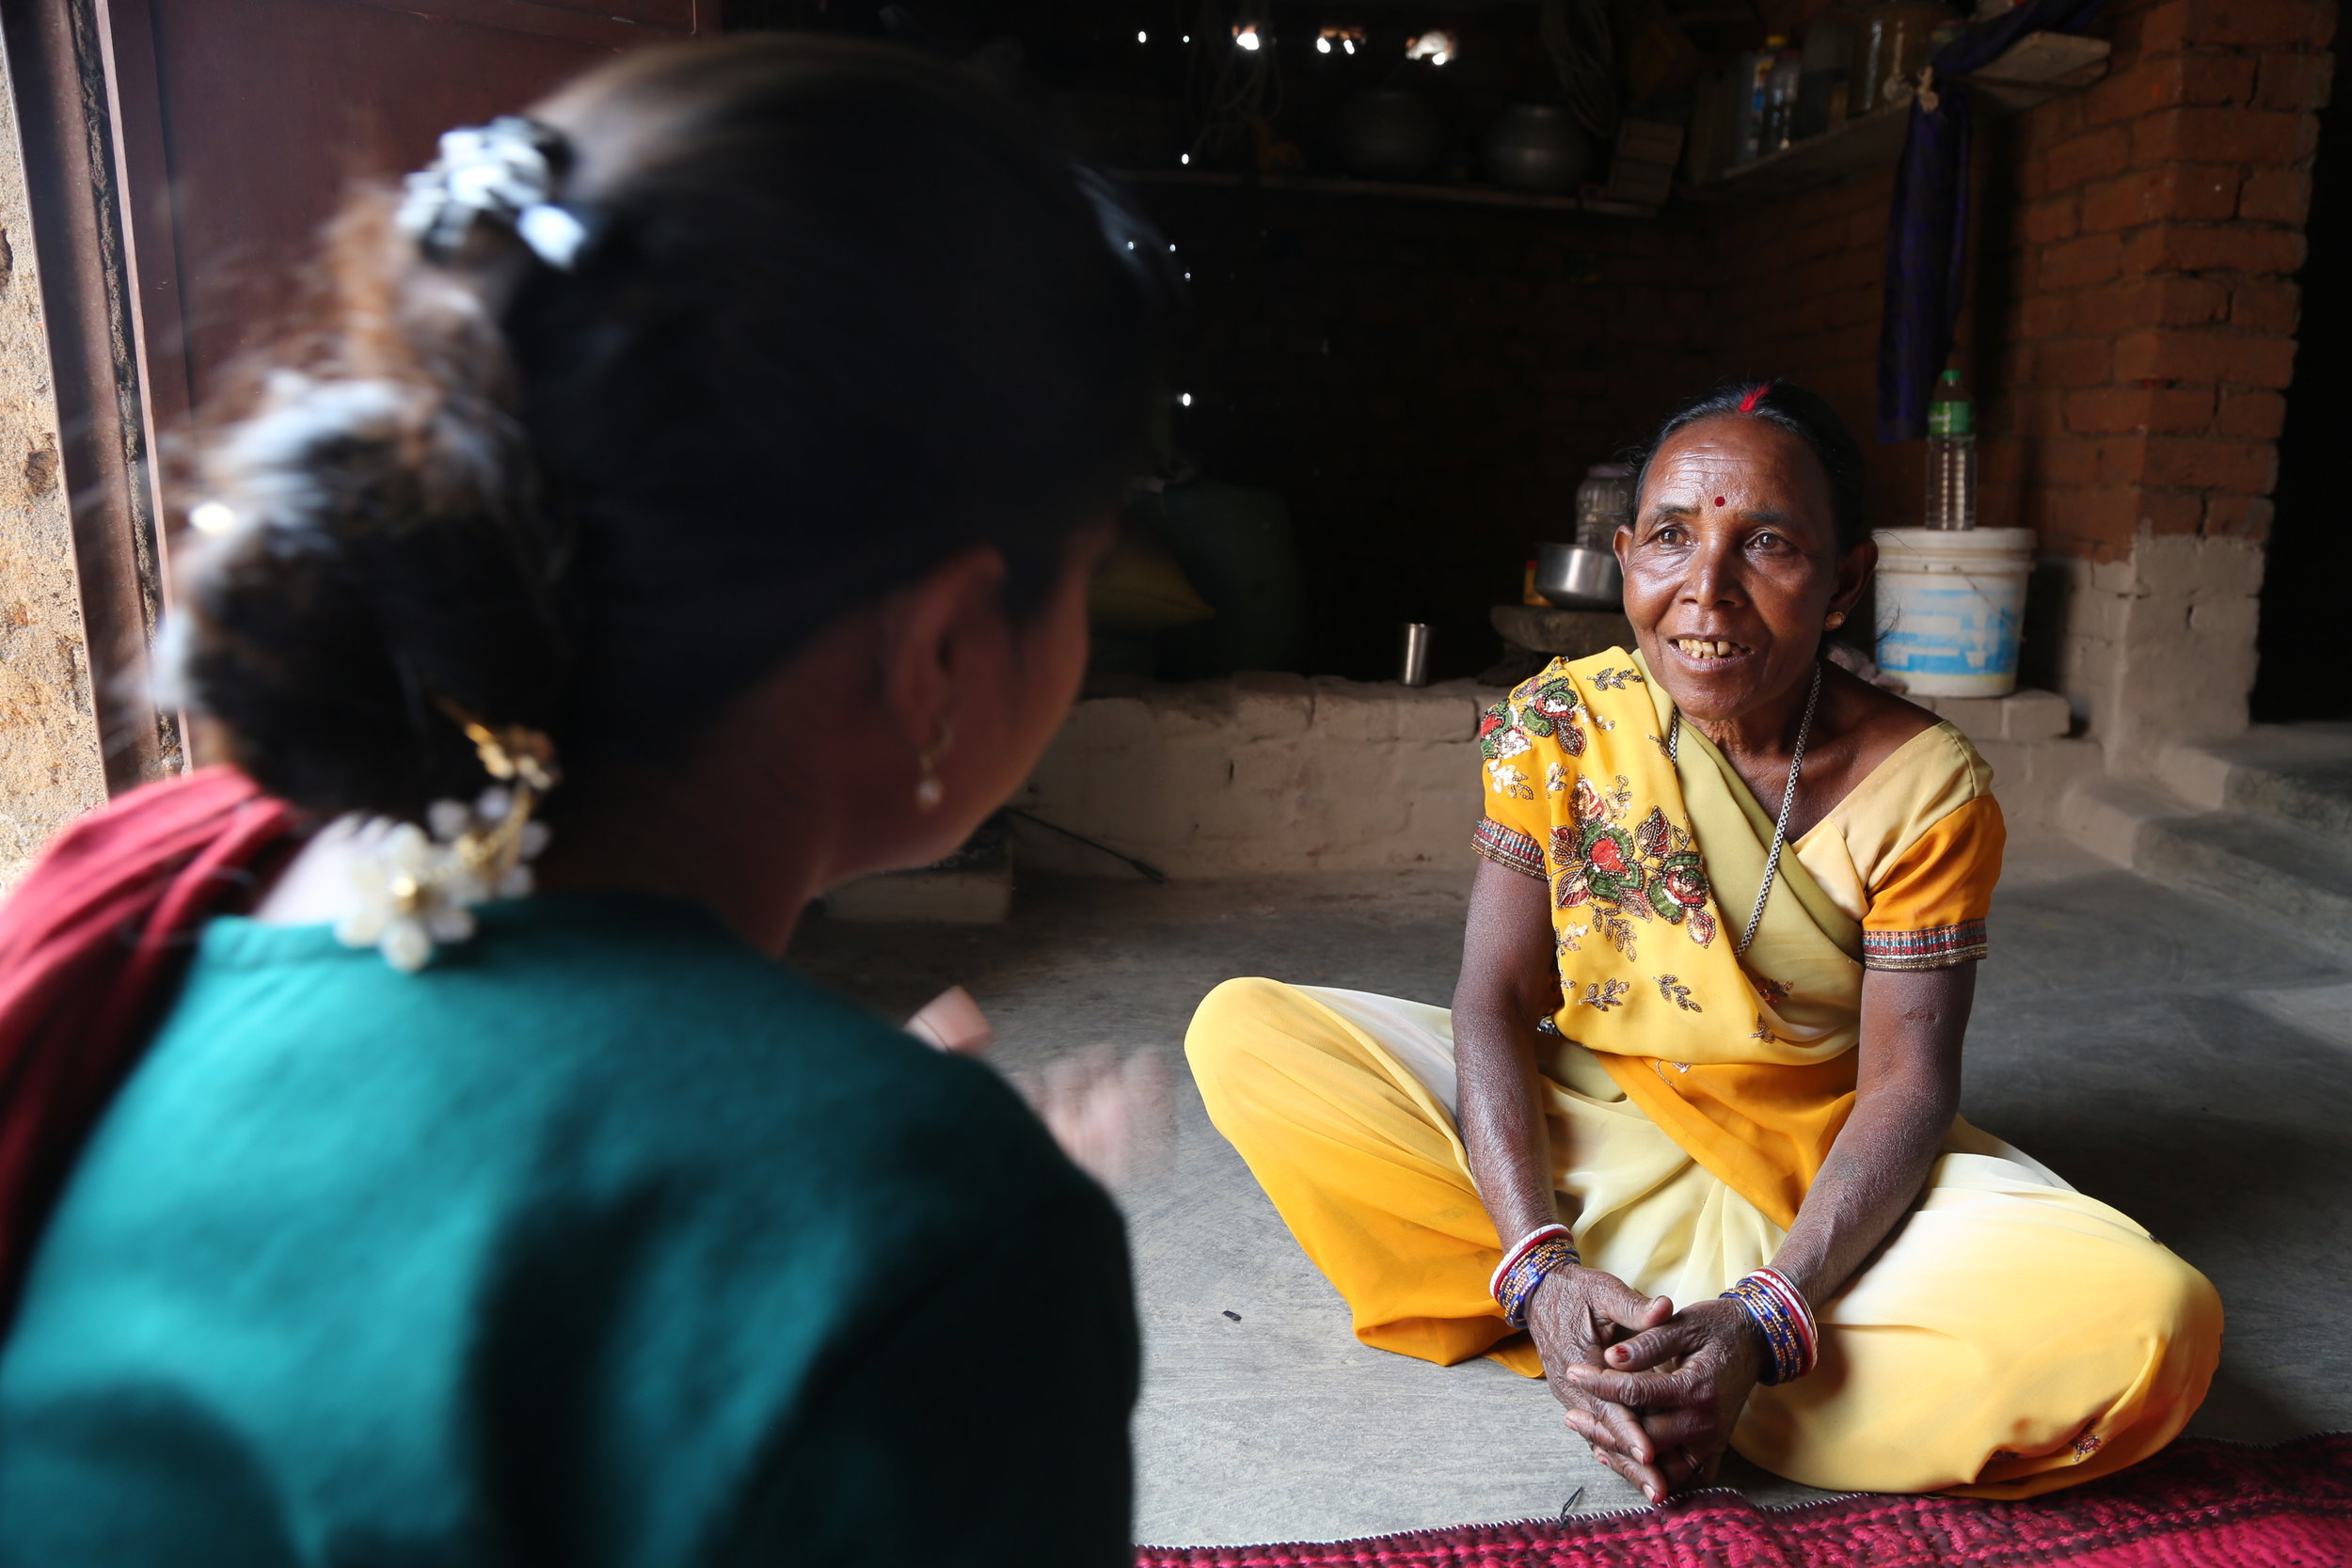 After receiving training supported by the partnership between All We Can and WDR Manato went on to lead a women's self-help group in Jharkhand, India [Partner:  The Srijan Foundation ]